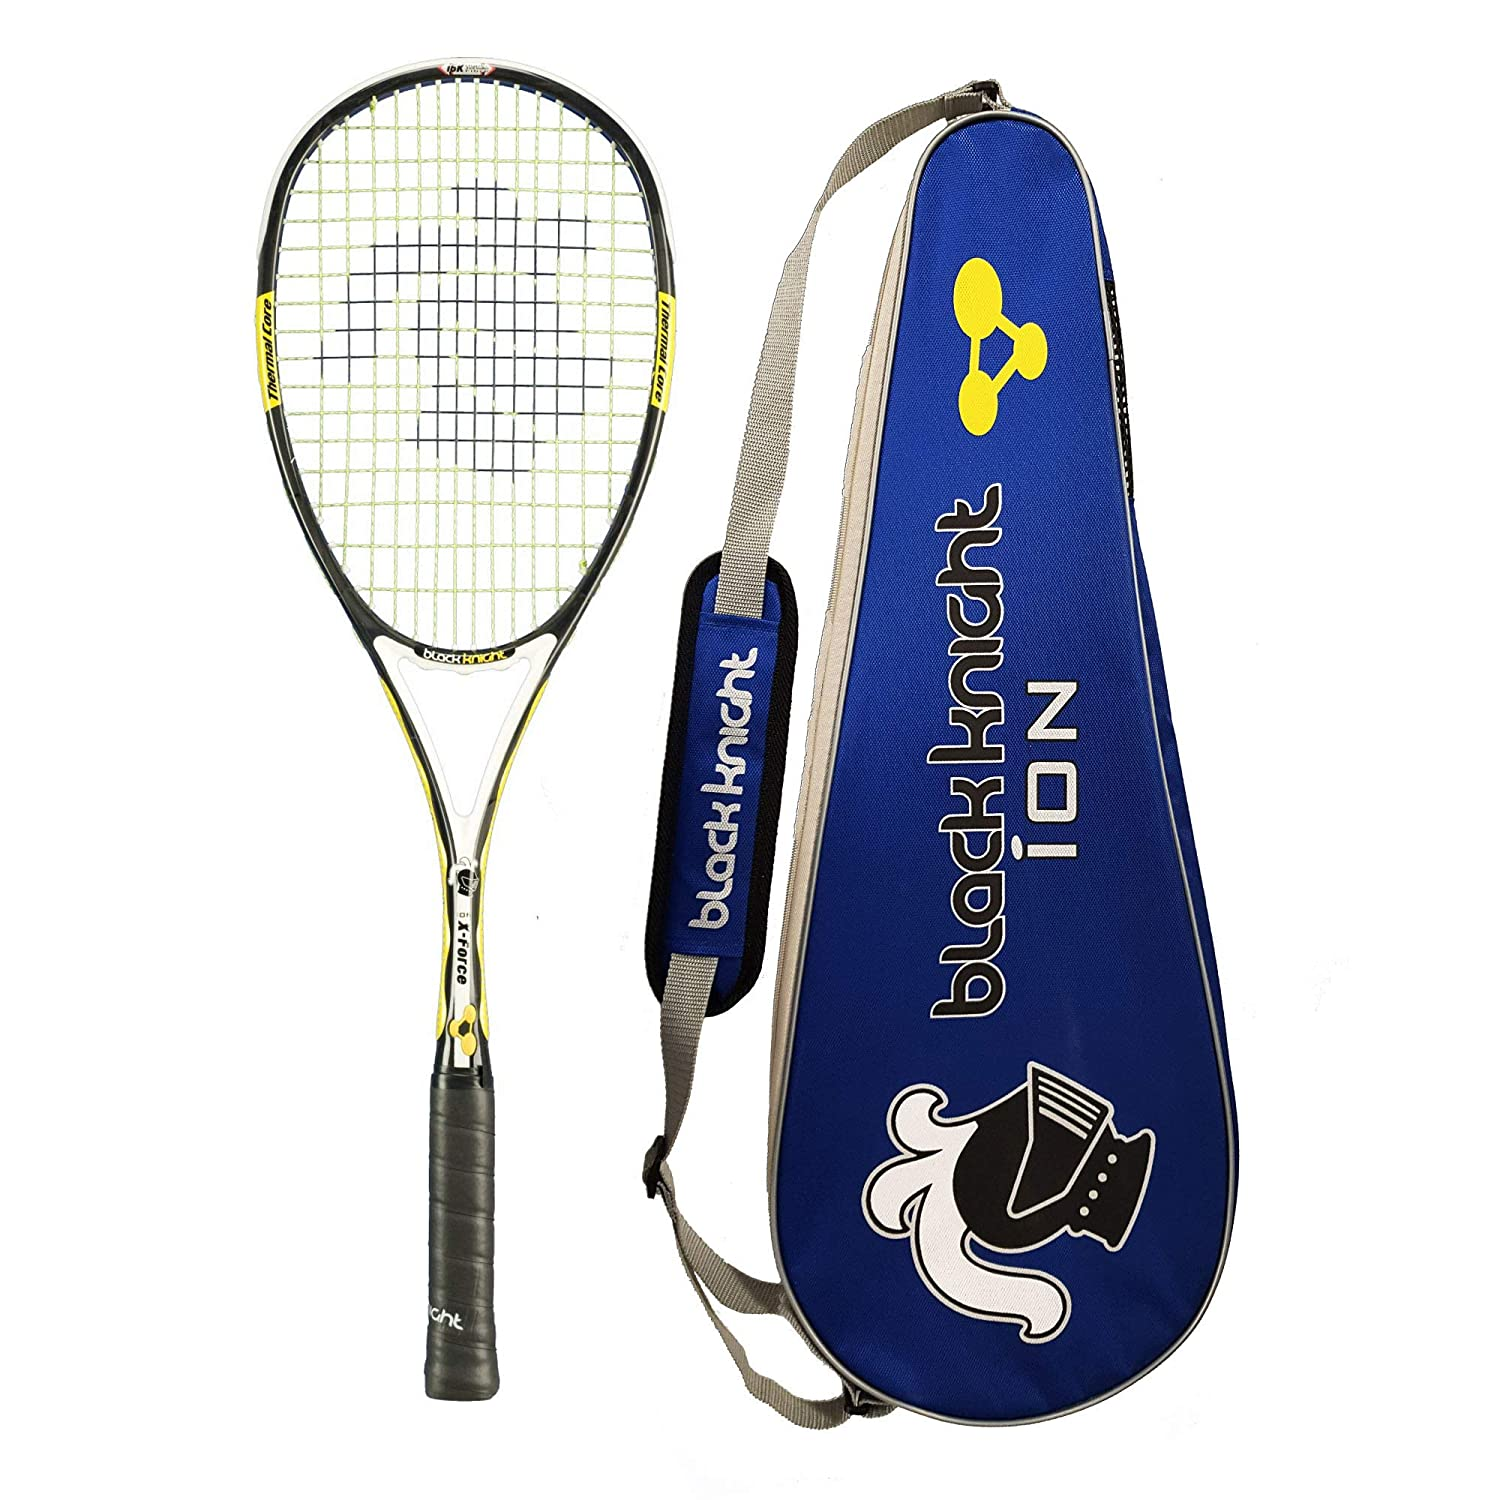 Black Knight ION X-Force Black Squash Racket New 2011